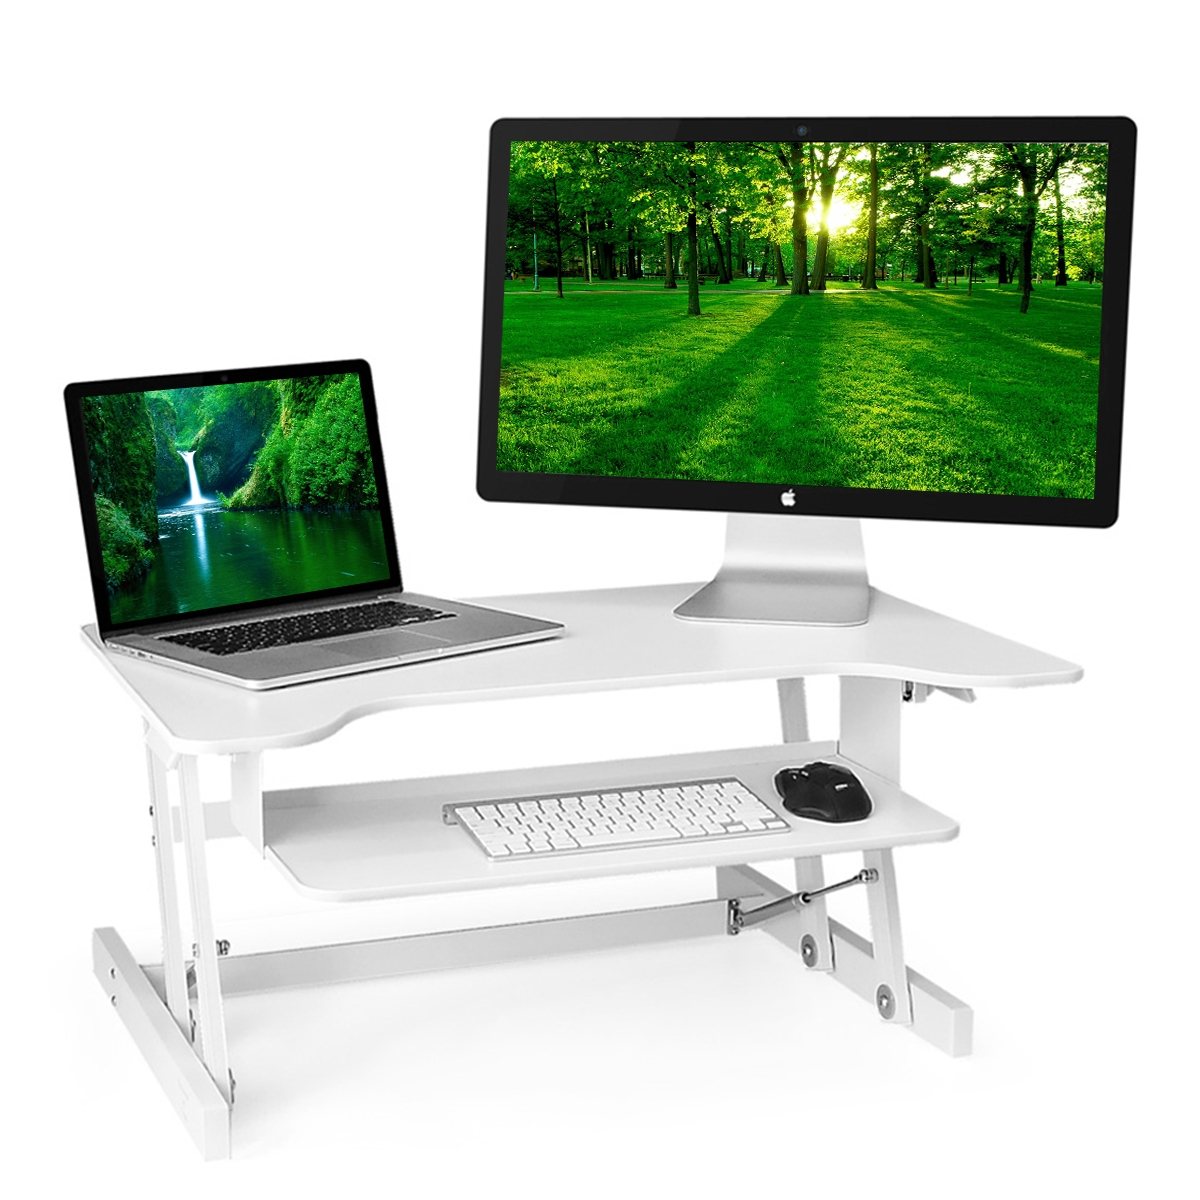 ergonomics electric up desktop computer desks legs converter surface platform and ergo lowers sit tables raising adjustable office that stand raises full of with standing table desk size height raised rising wheels